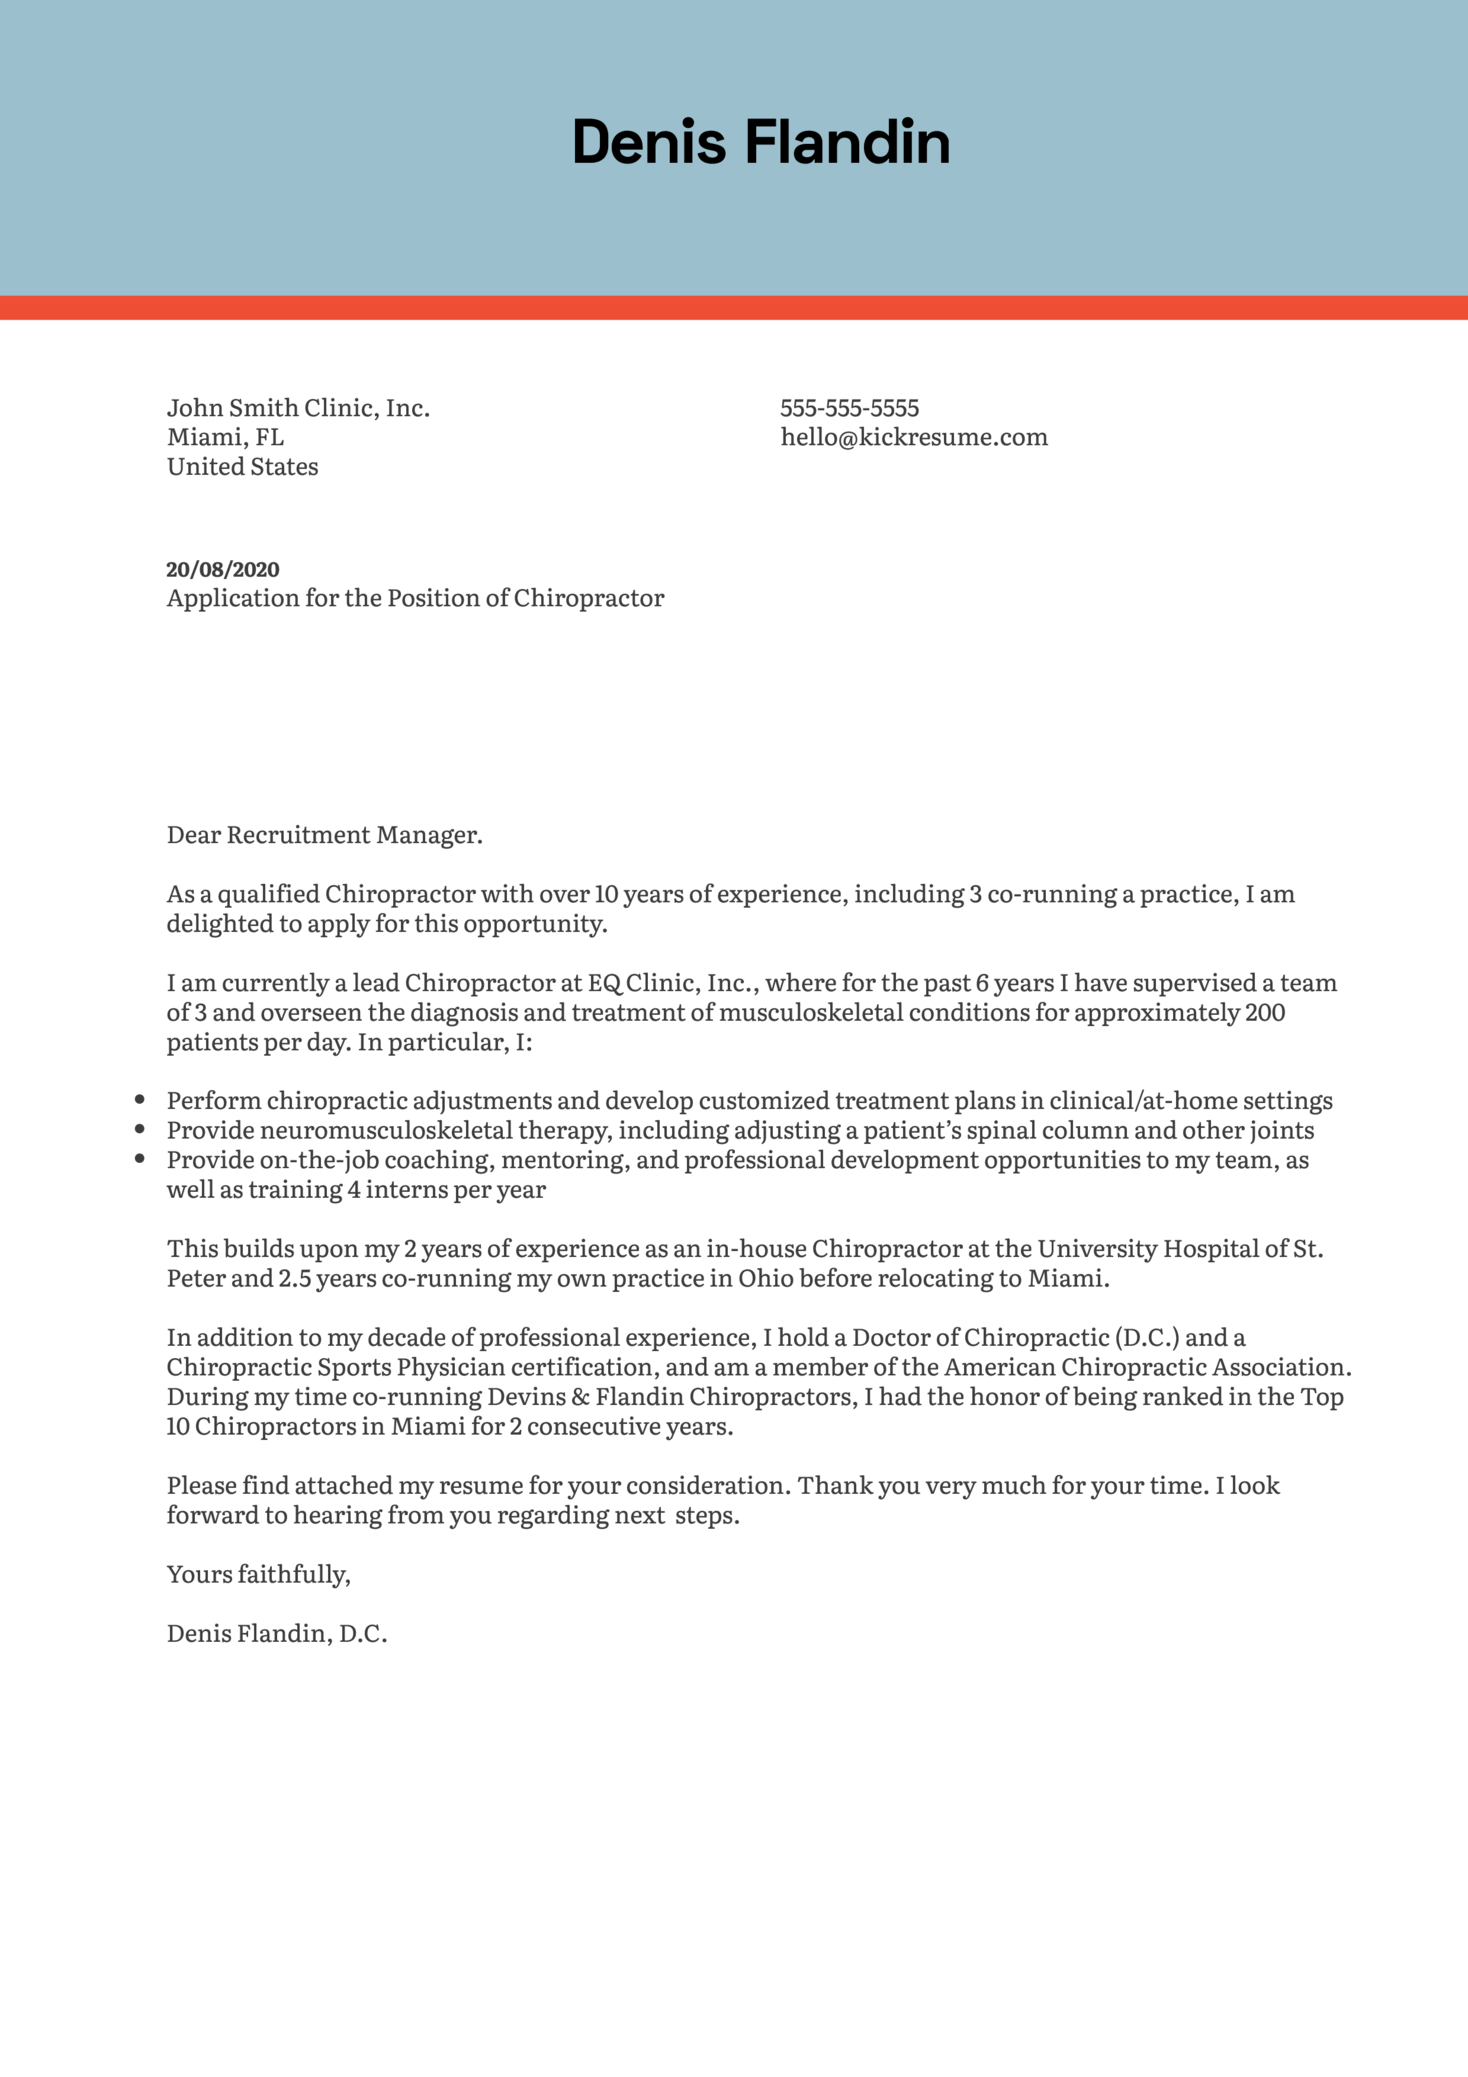 Chiropractor Cover Letter Example